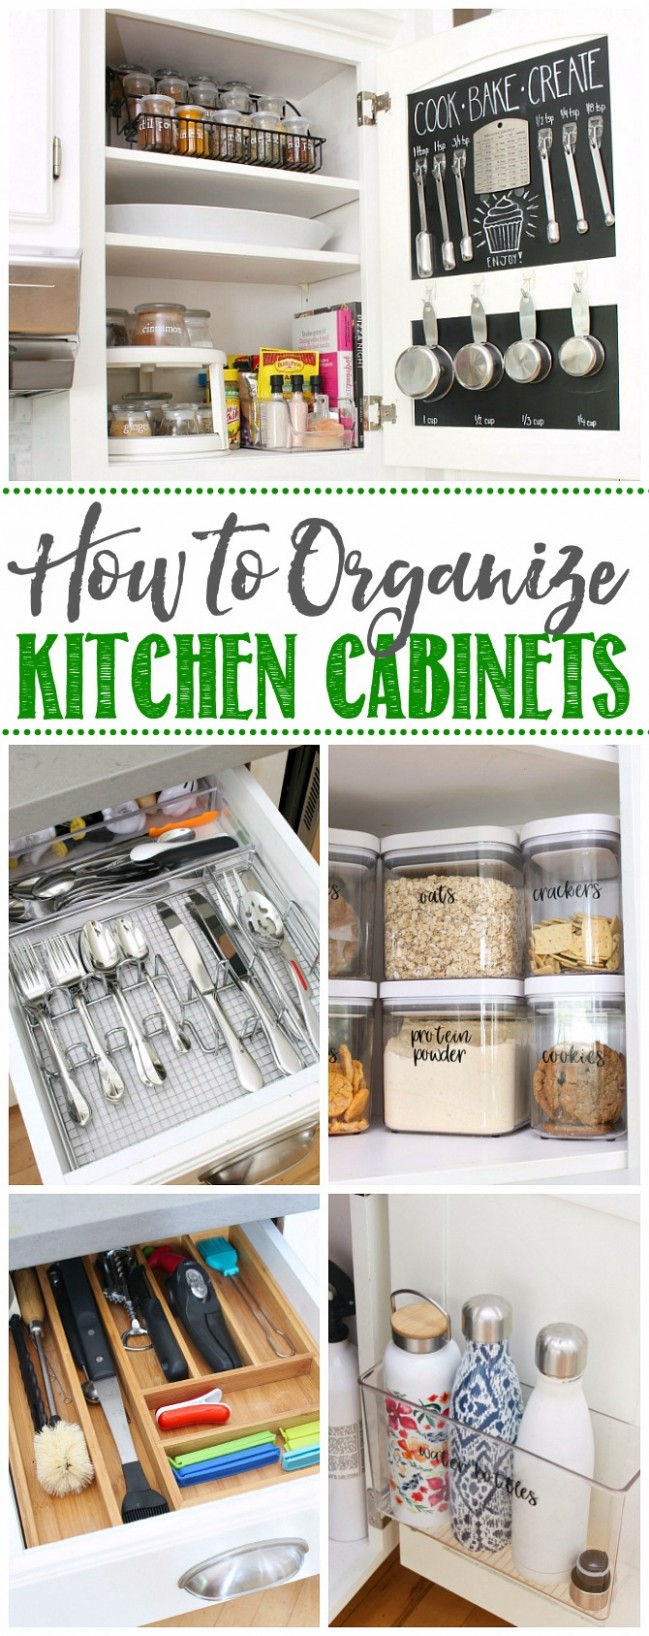 How to Organize Kitchen Cabinets - Clean and Scentsible - How To Place Items In Kitchen Cabinets